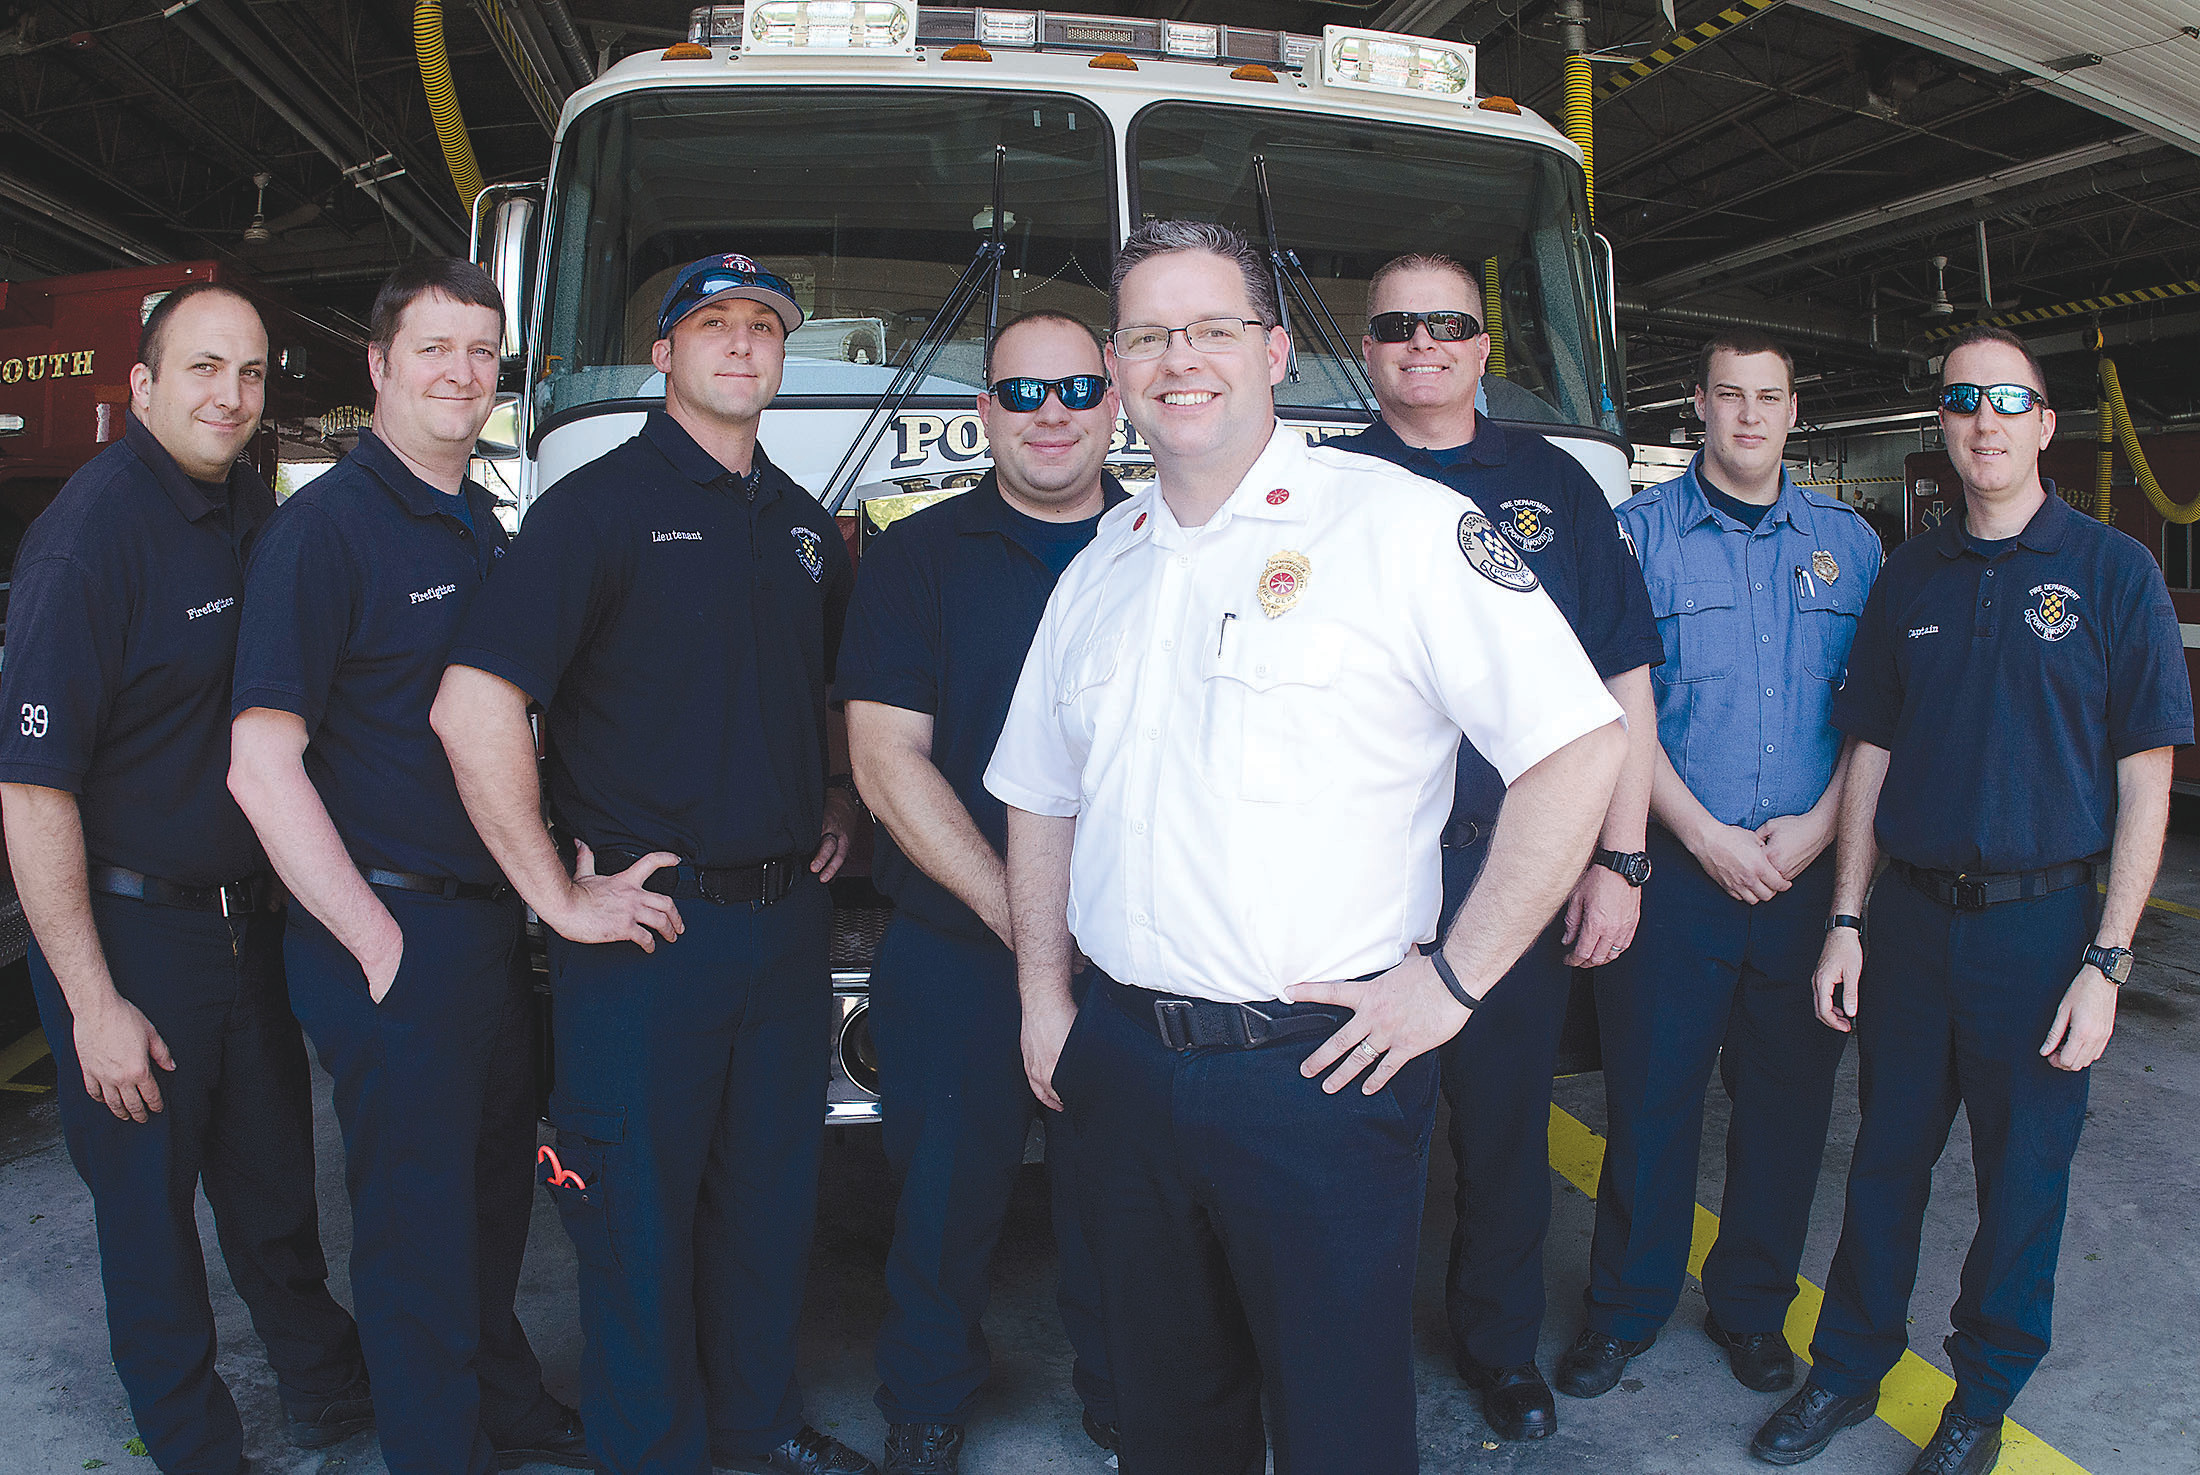 Portsmouth's deputy fire chief Michael O'Brien is moving on